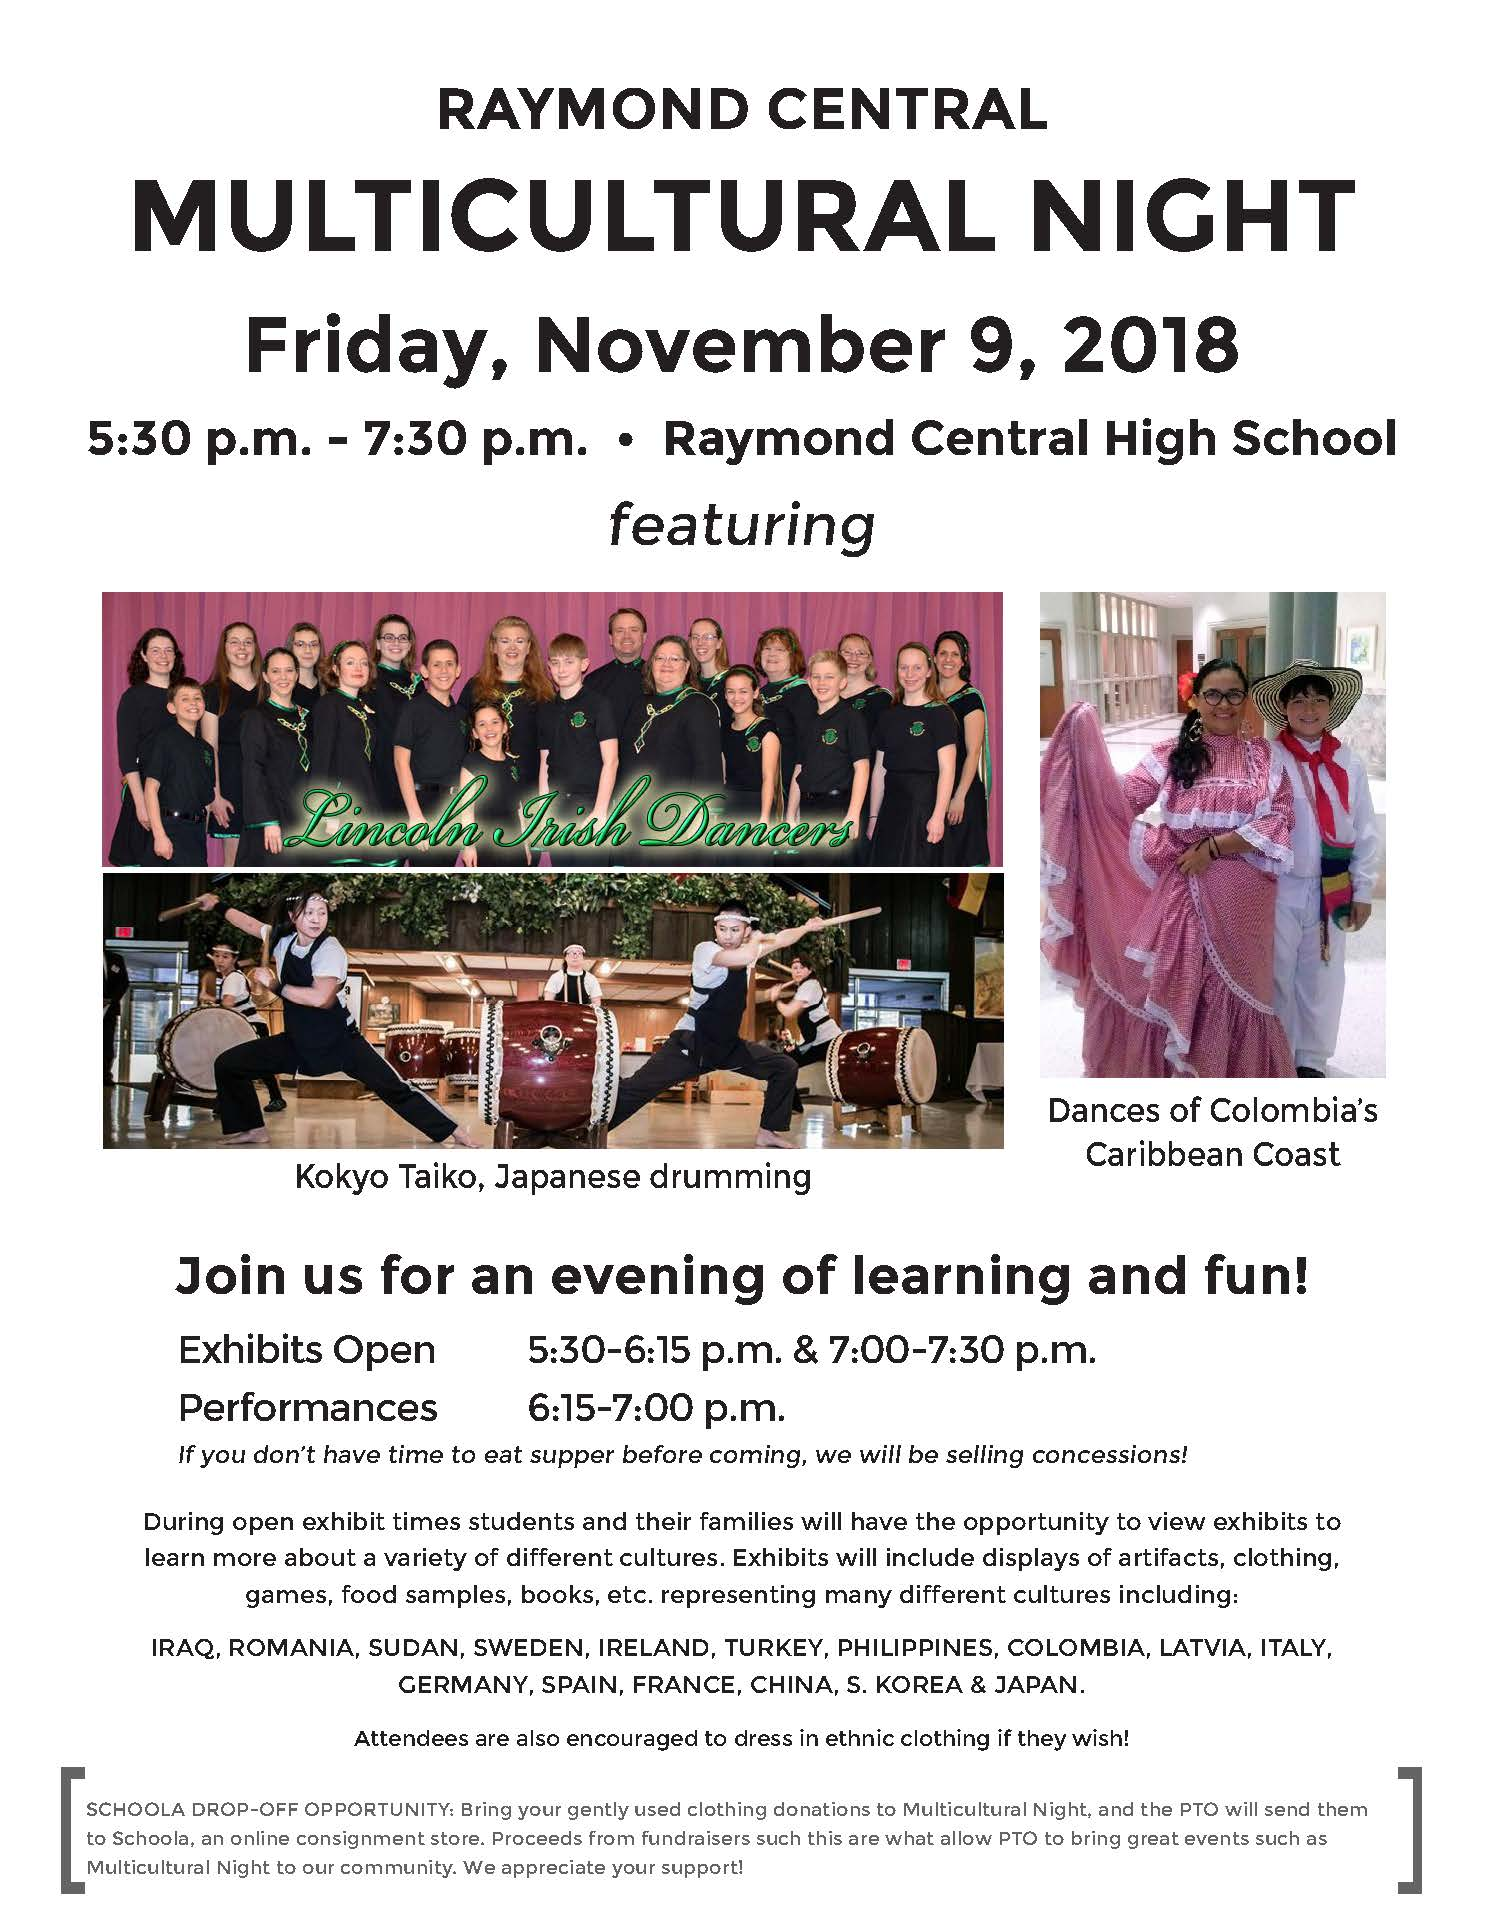 Raymond Central Multicultural Night flyer